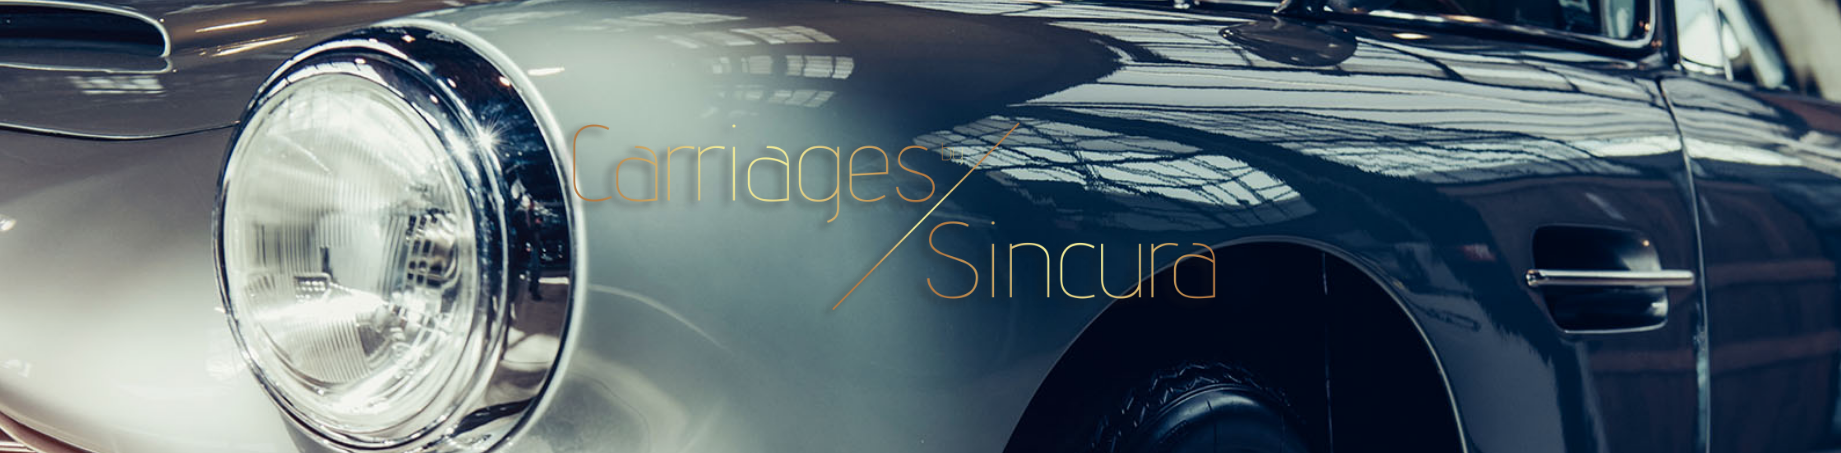 sincura concierge services cars and carriages